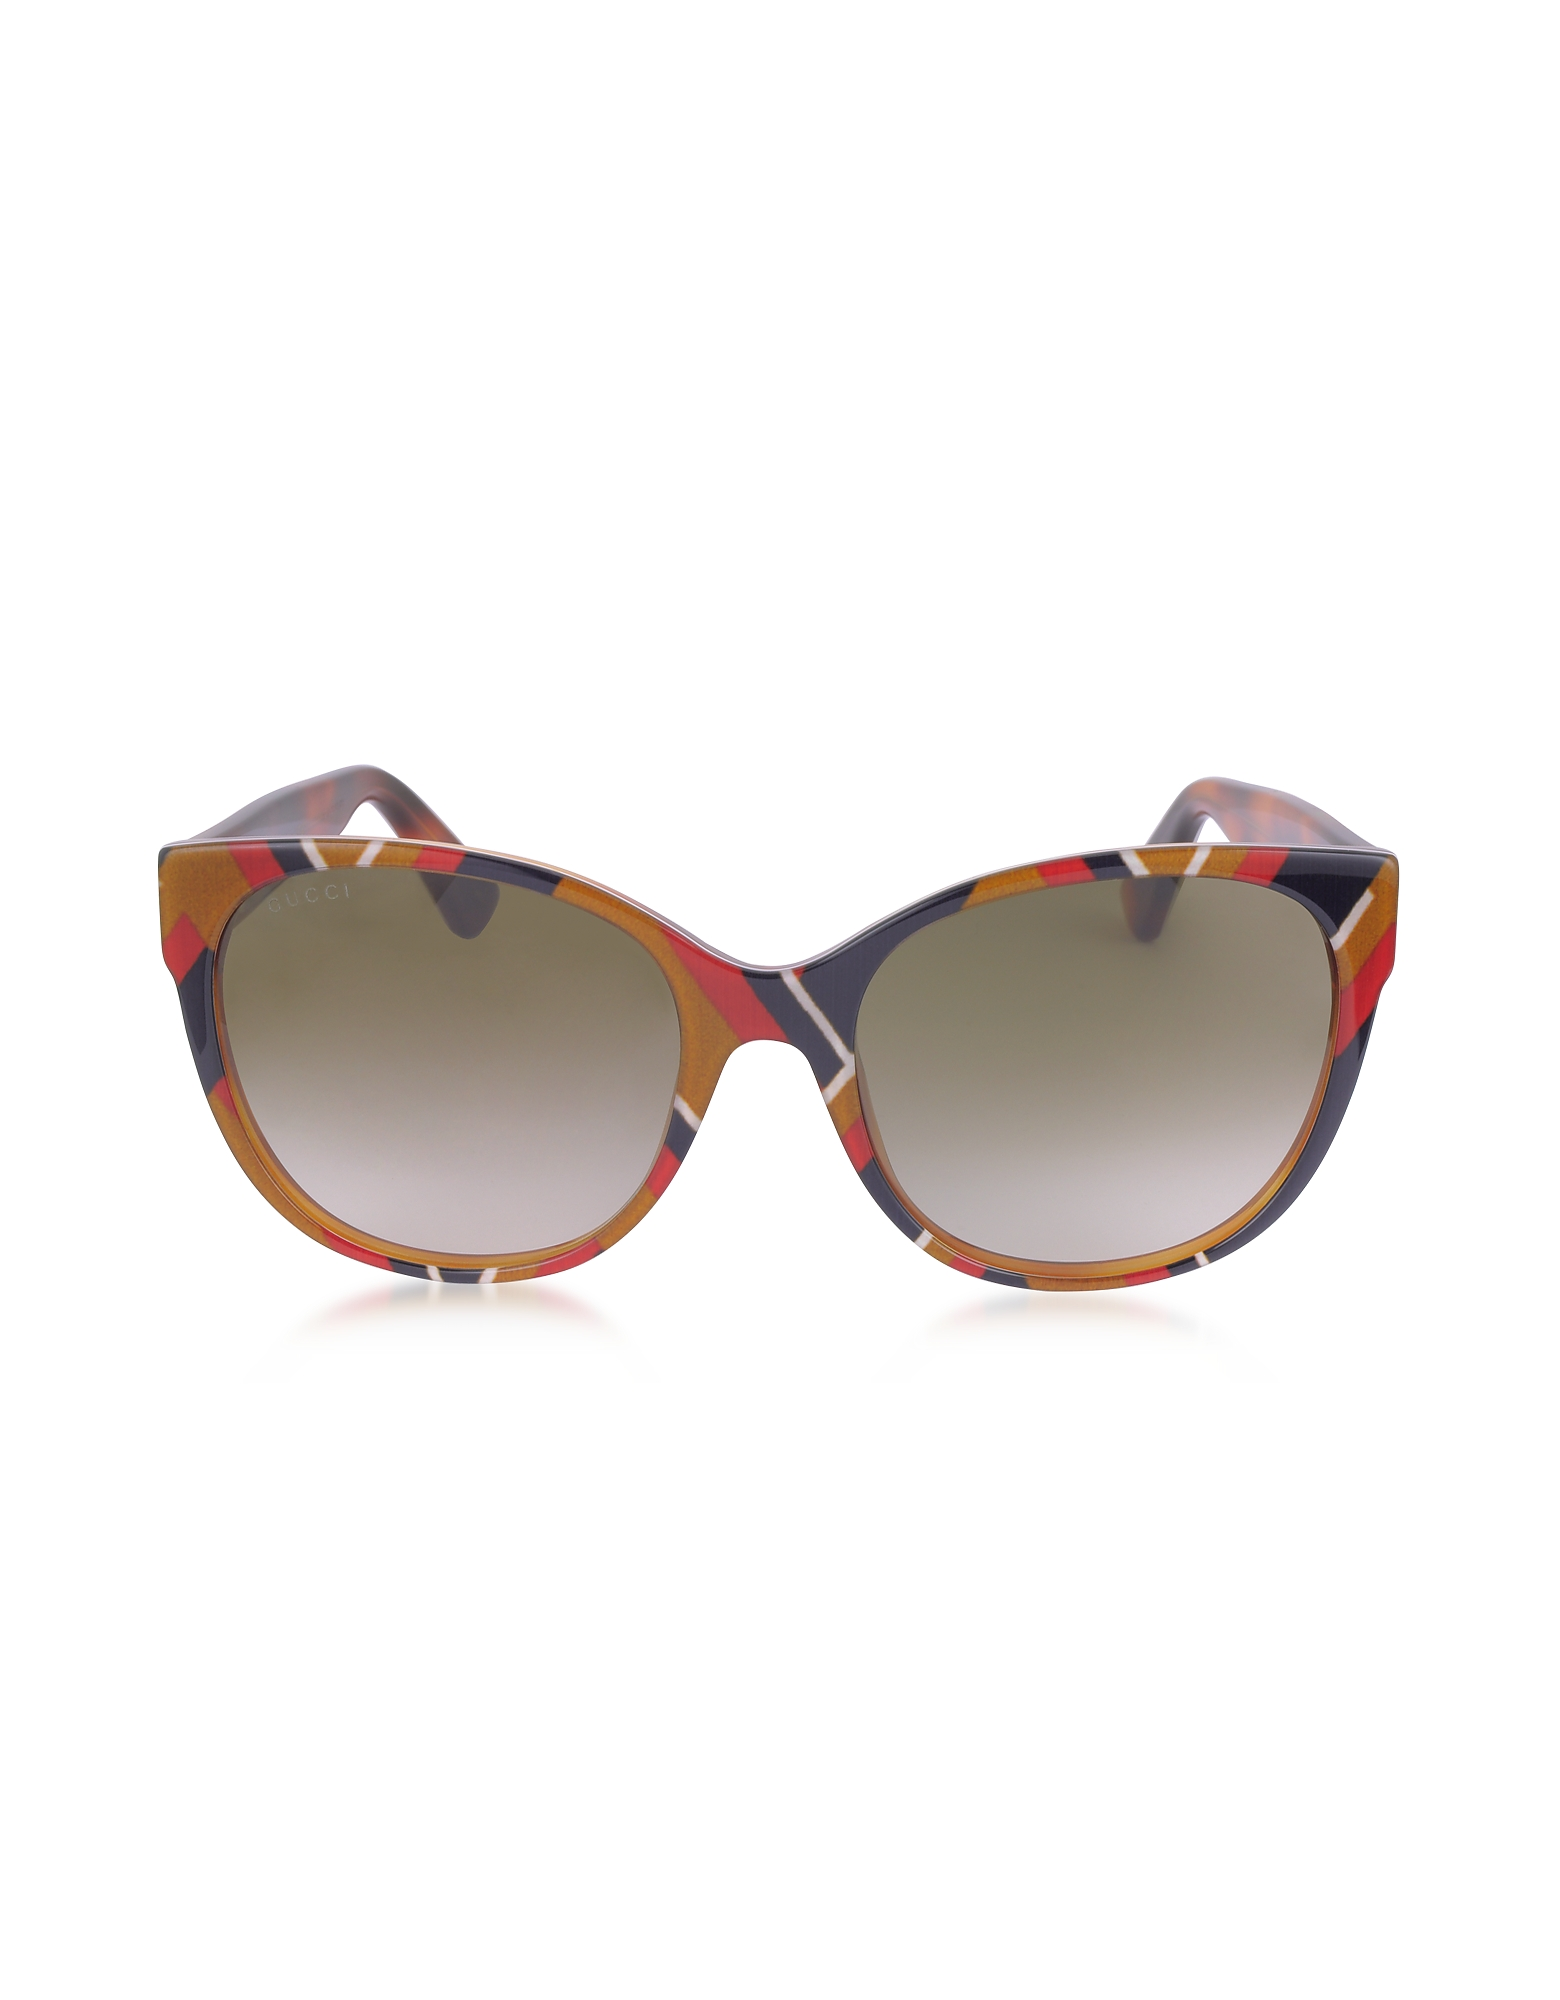 Gucci Sunglasses, GG0097S 004 Chevron Acetate Cat Eye Women's Sunglasses